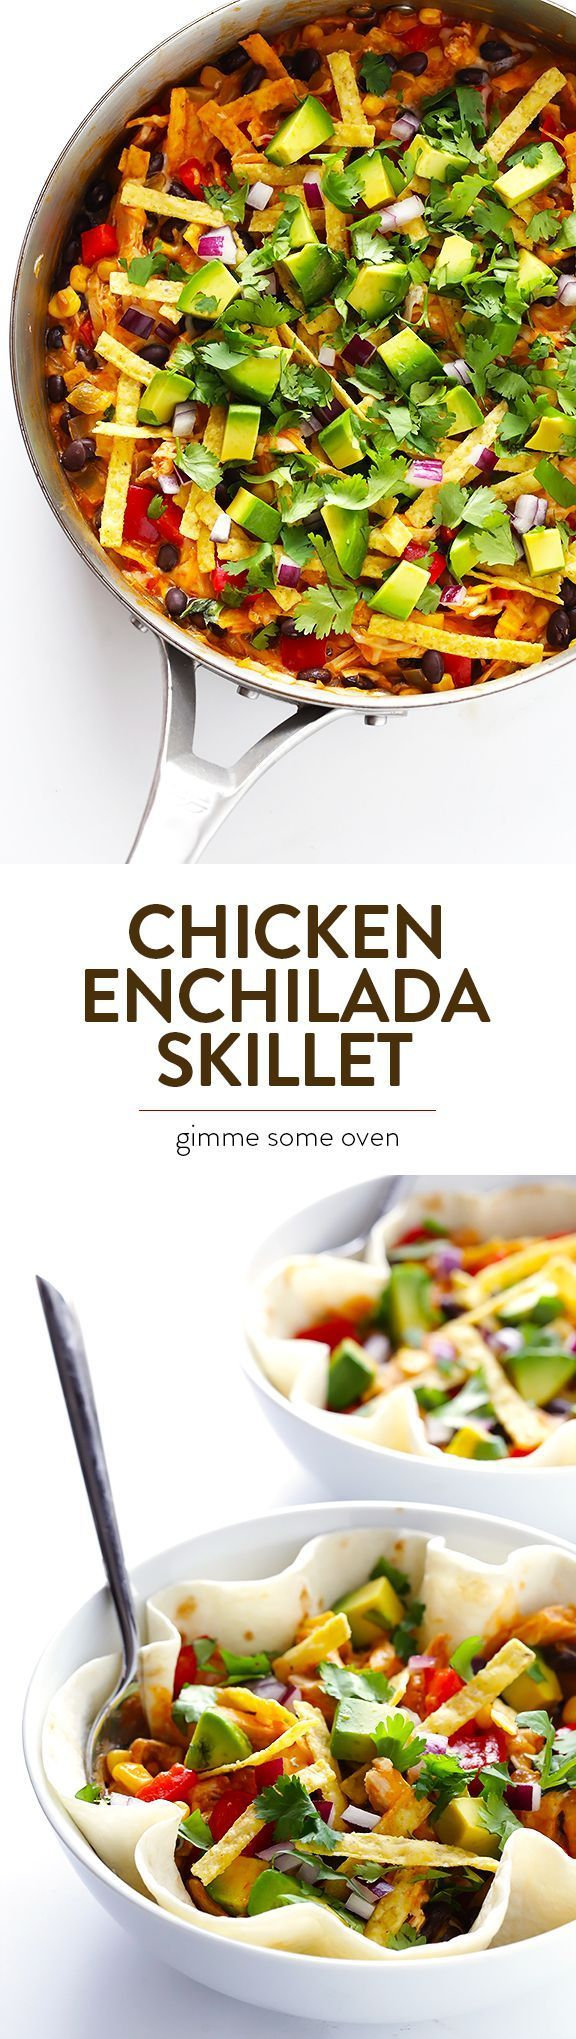 Easy Chicken Enchilada Skilelt - Everything you love about chicken enchiladas...made extra easy in 20 minutes in a skillet!